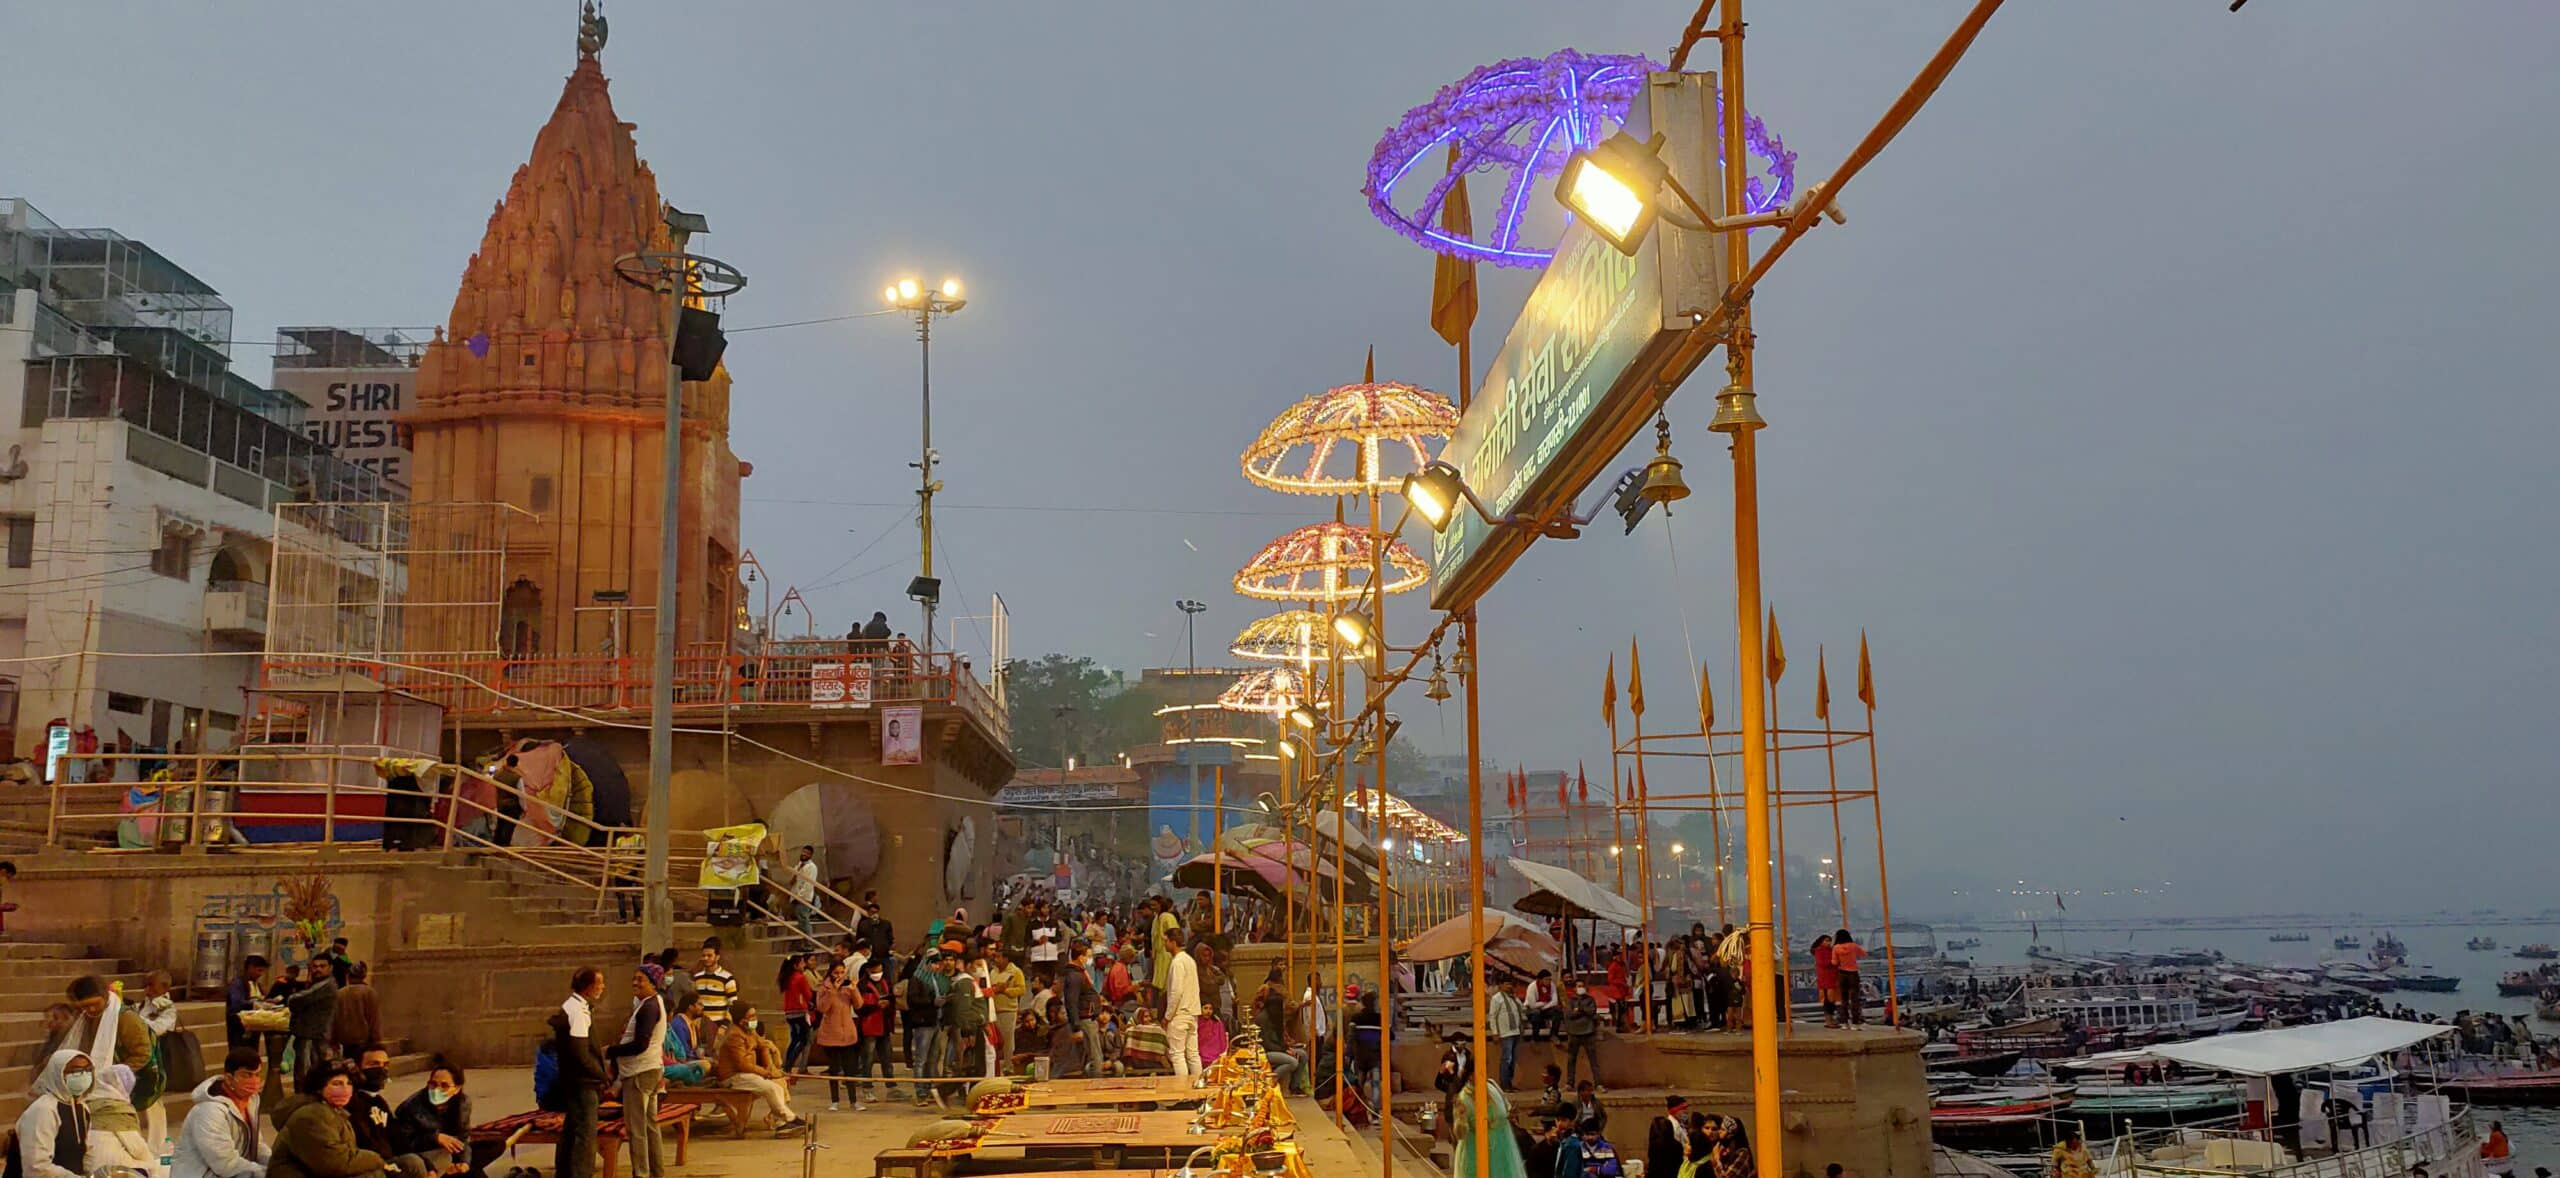 9 AWESOME THINGS TO DO IN VARANASI 2021